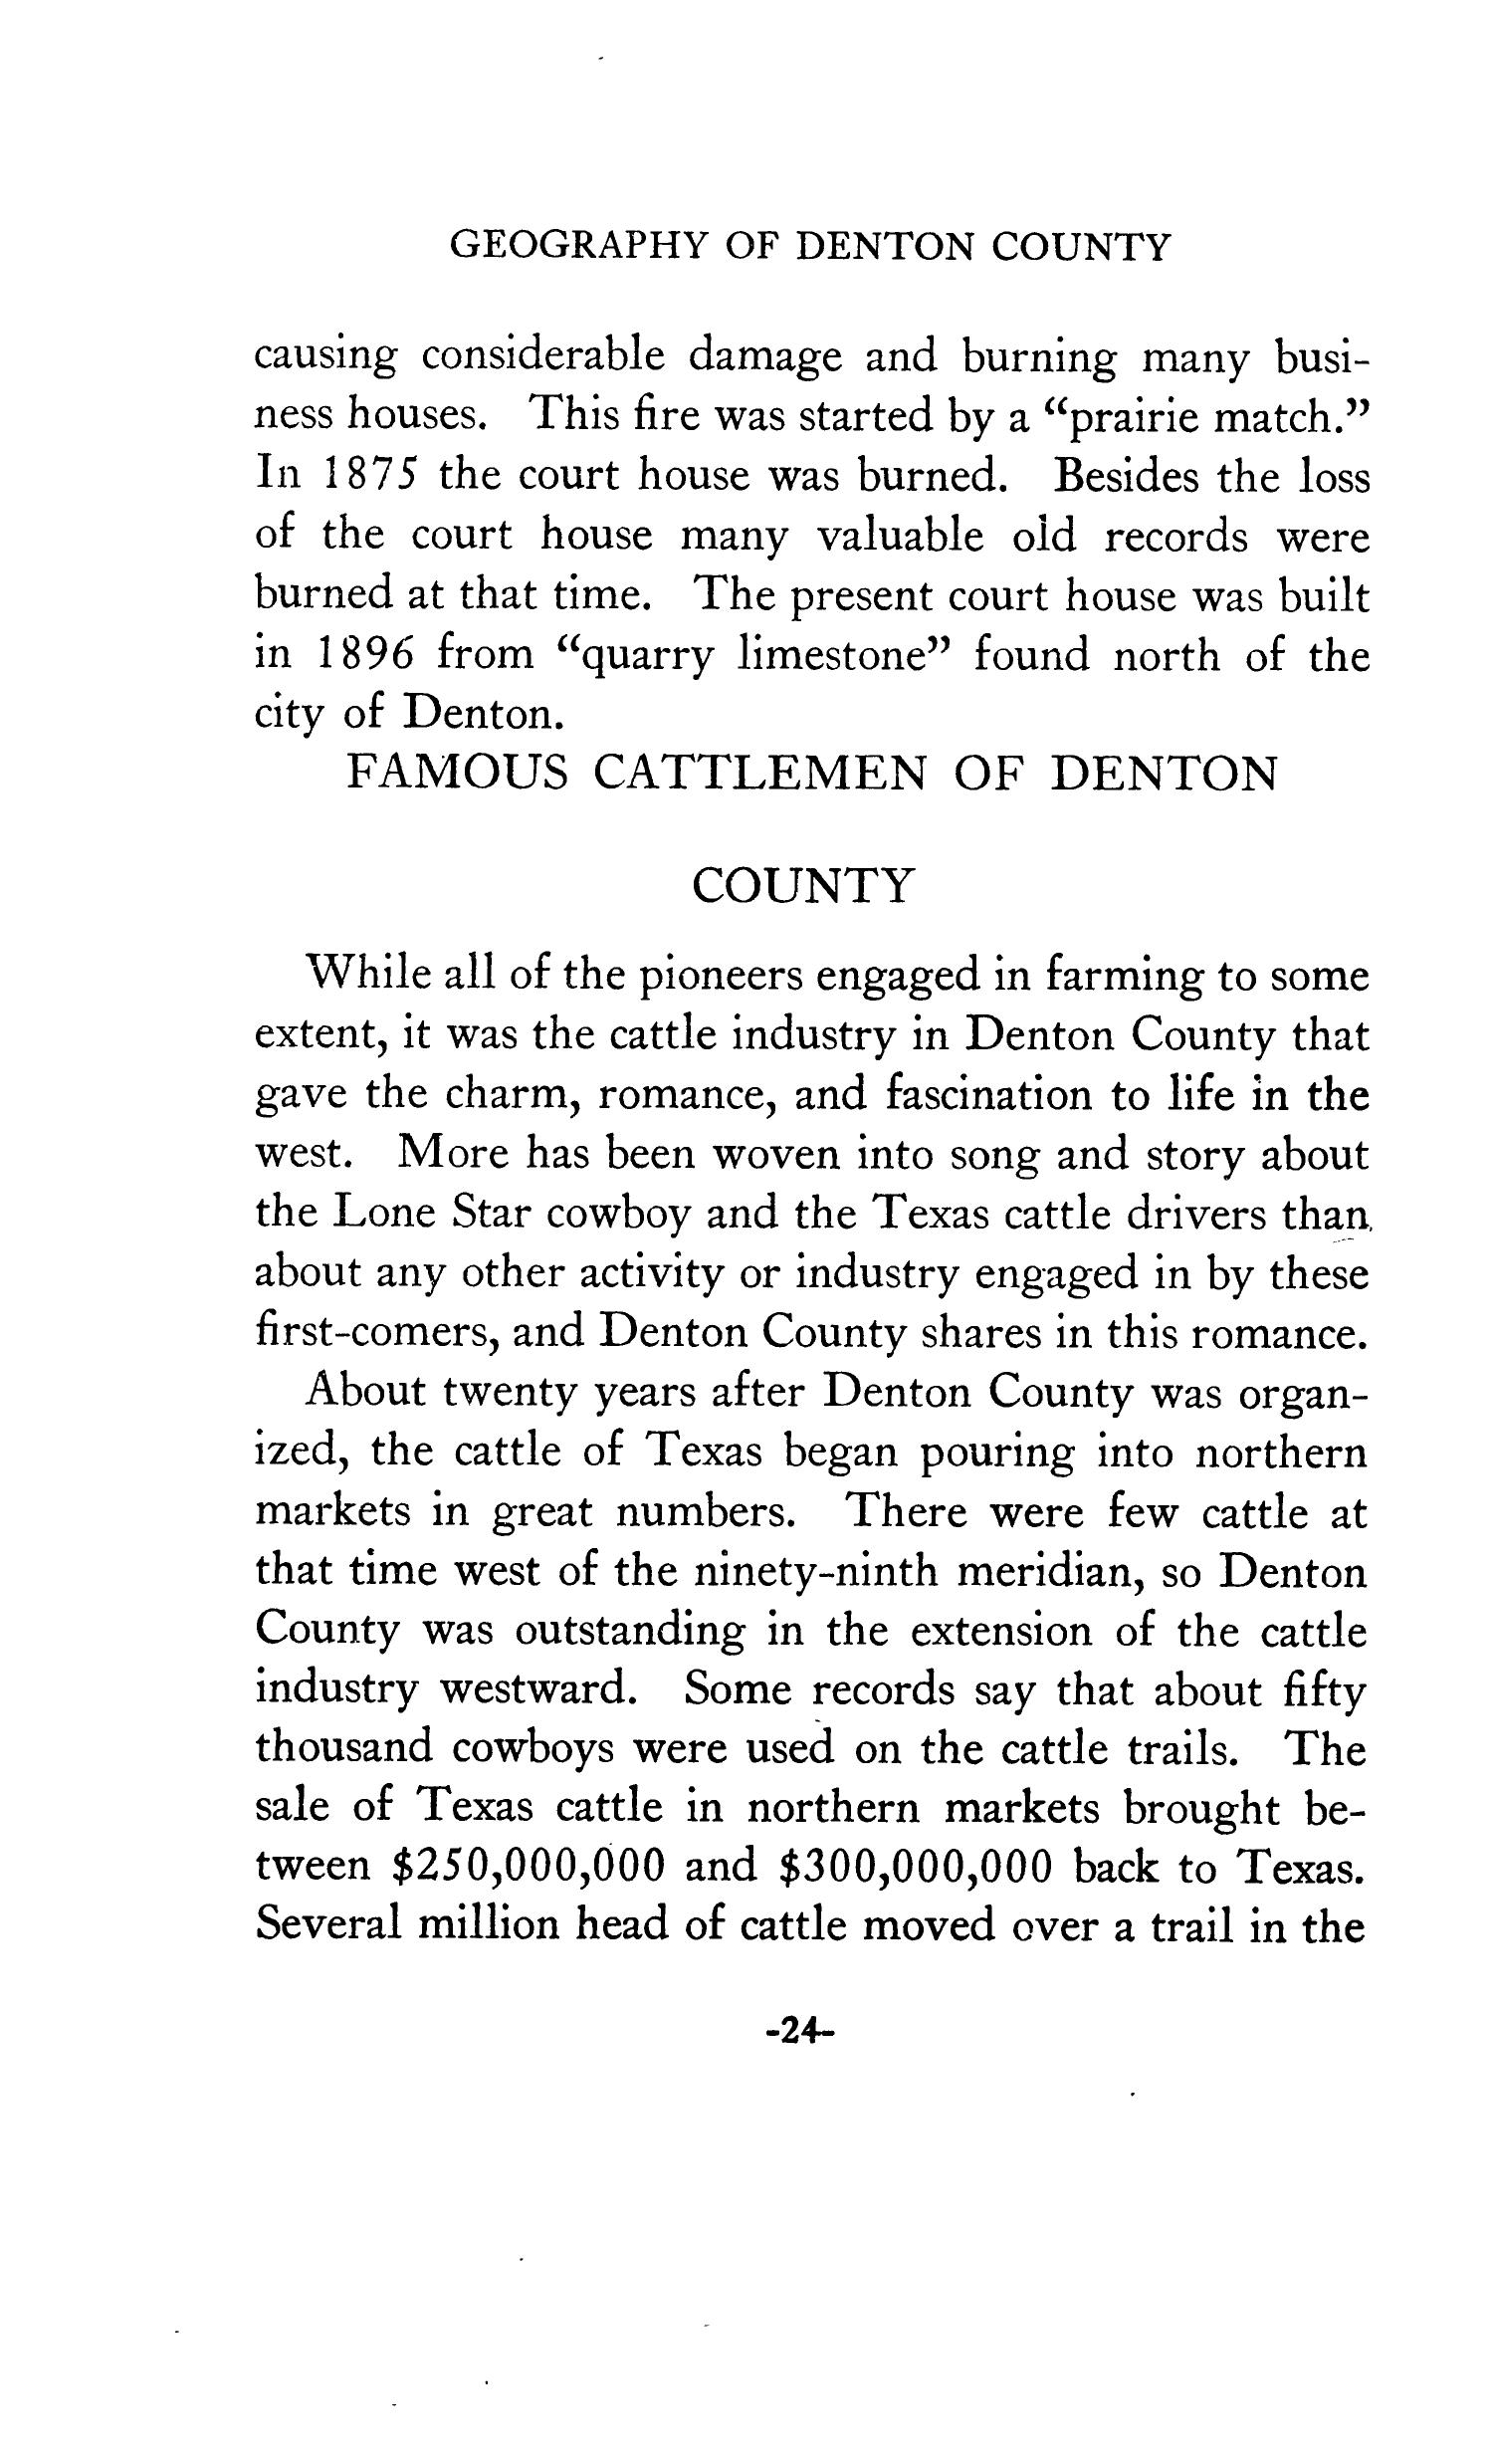 Geography of Denton County                                                                                                      24